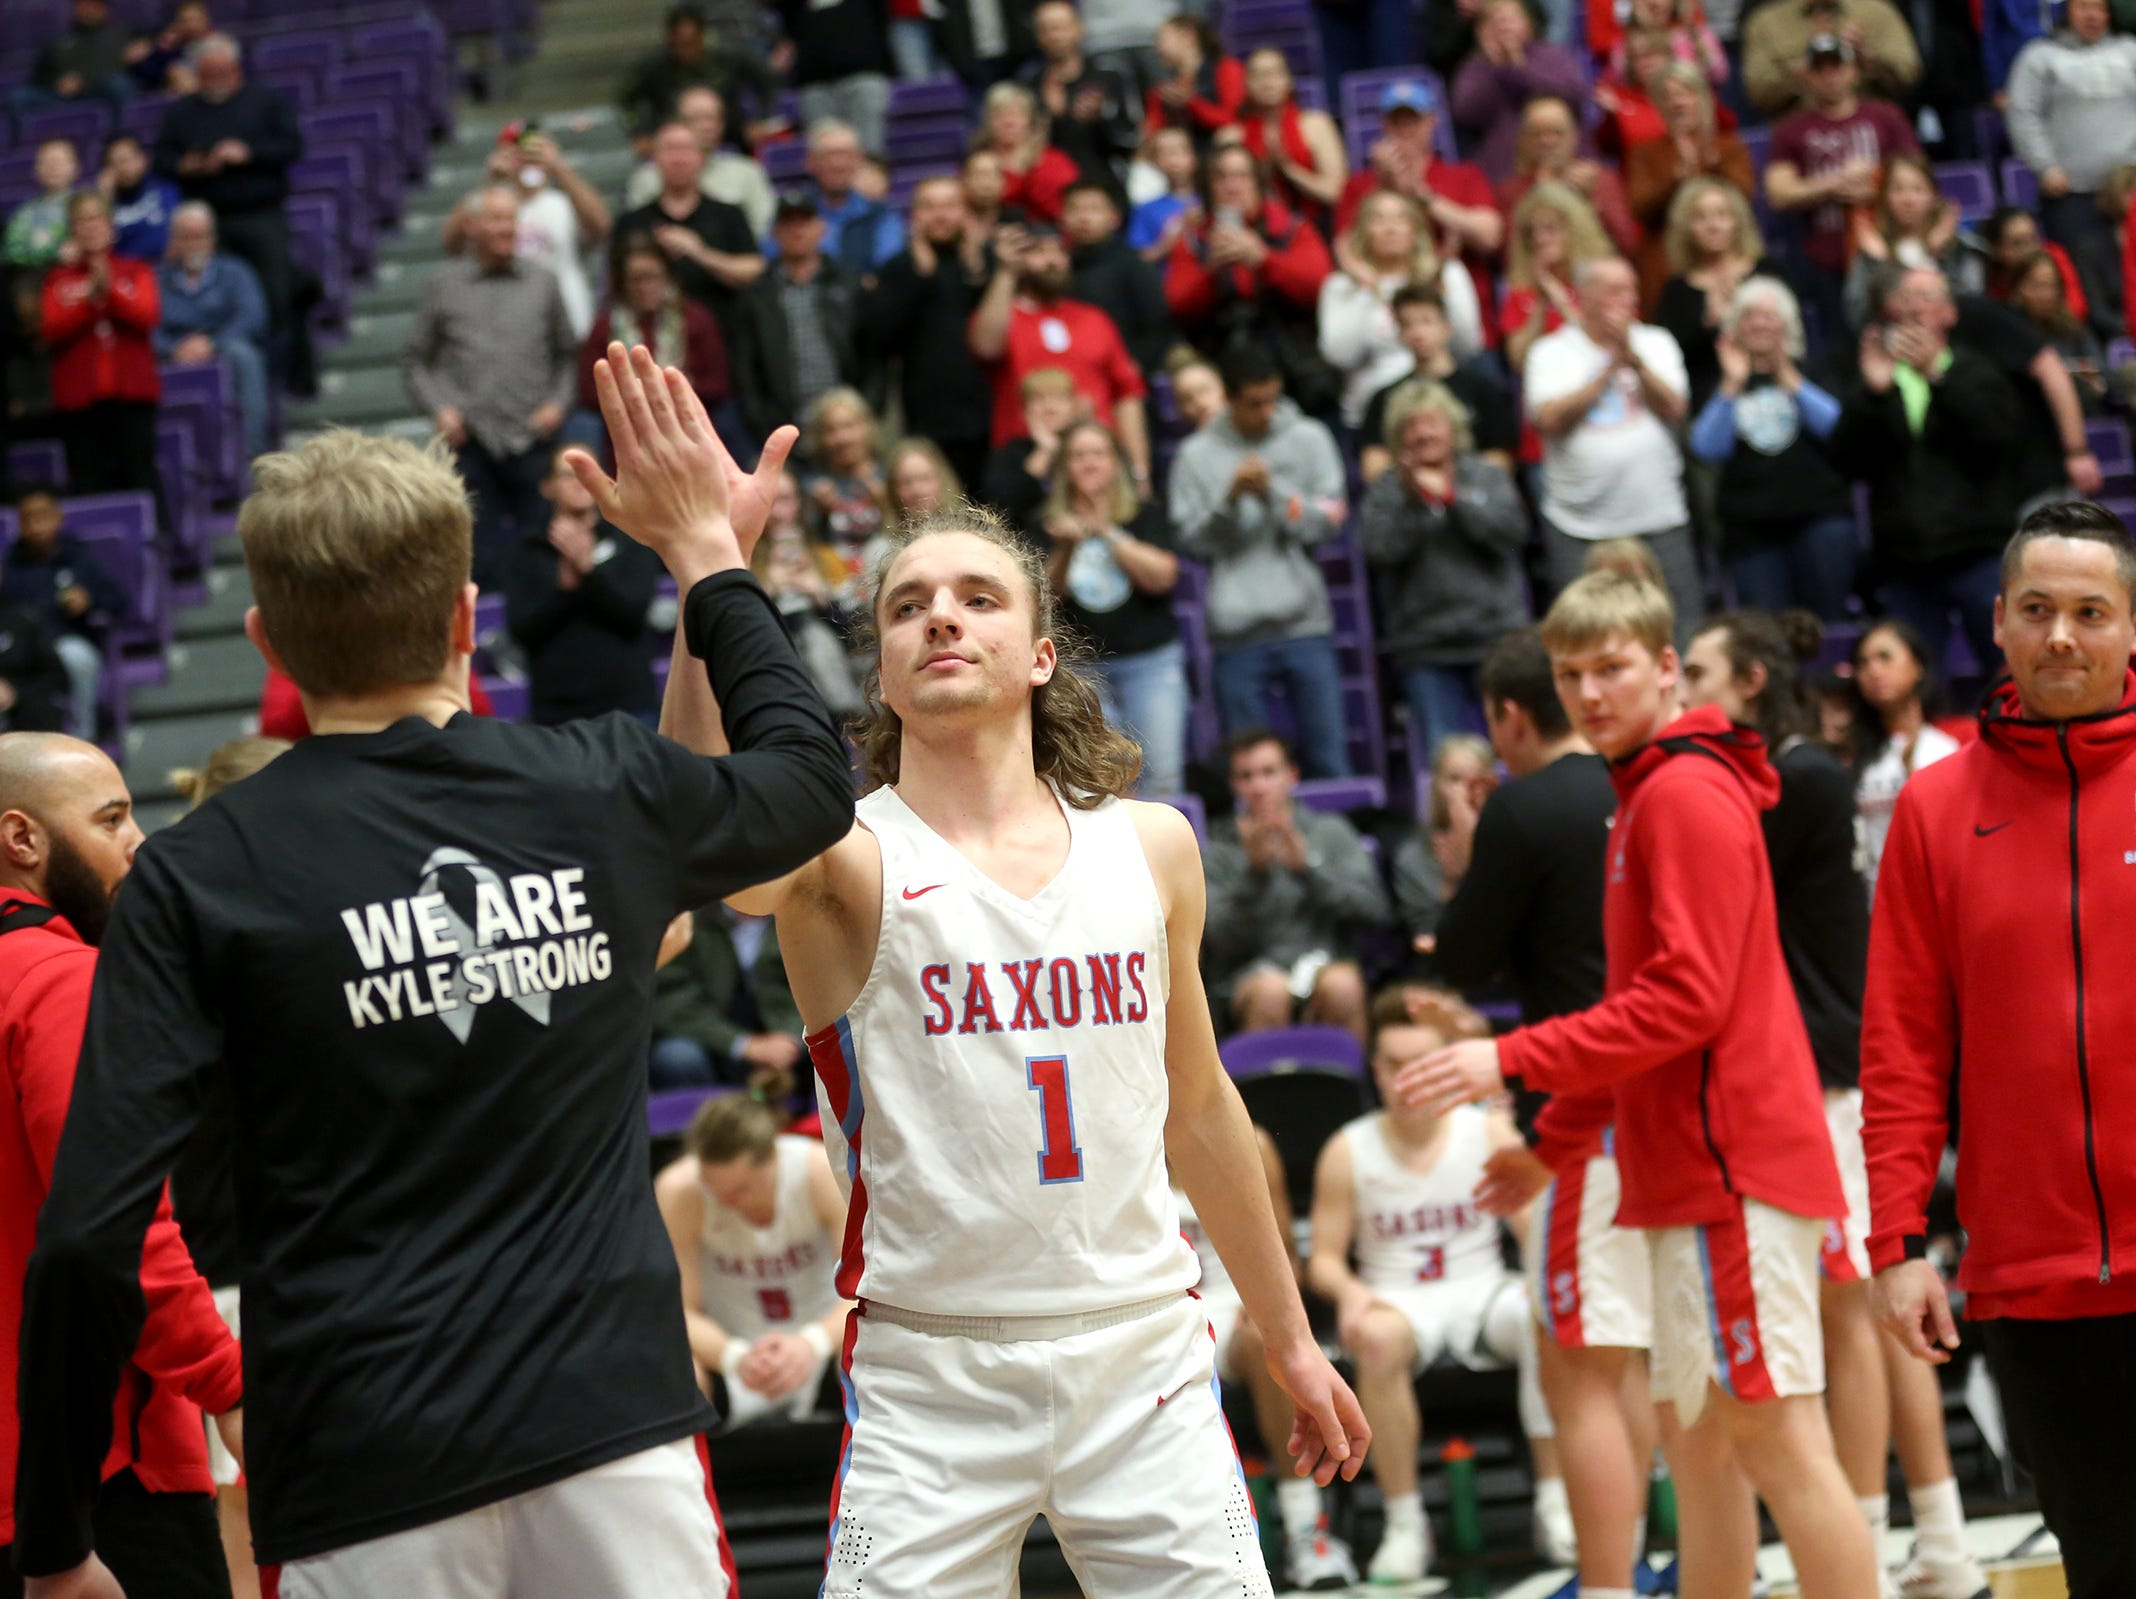 South Salem's Eric Lungu (1) is introduced in the starting lineup during the South Salem vs. Jefferson boys basketball OSAA 6A semifinal game at Chiles Center in Portland on Friday, March 8, 2019.